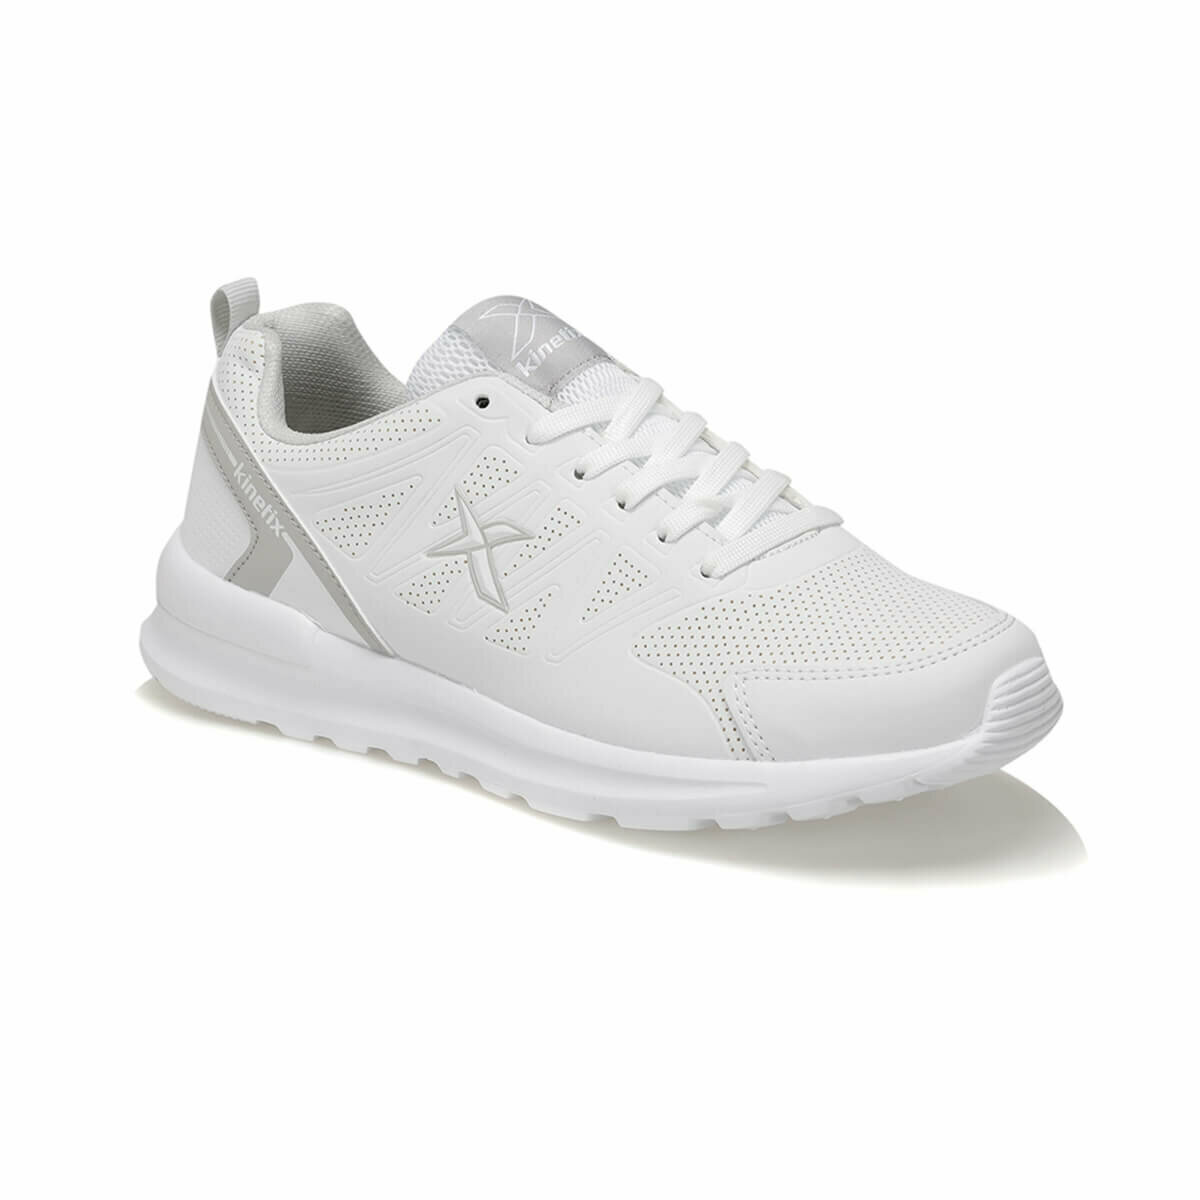 FLO DENES M White Men 'S Sneaker Shoes KINETIX